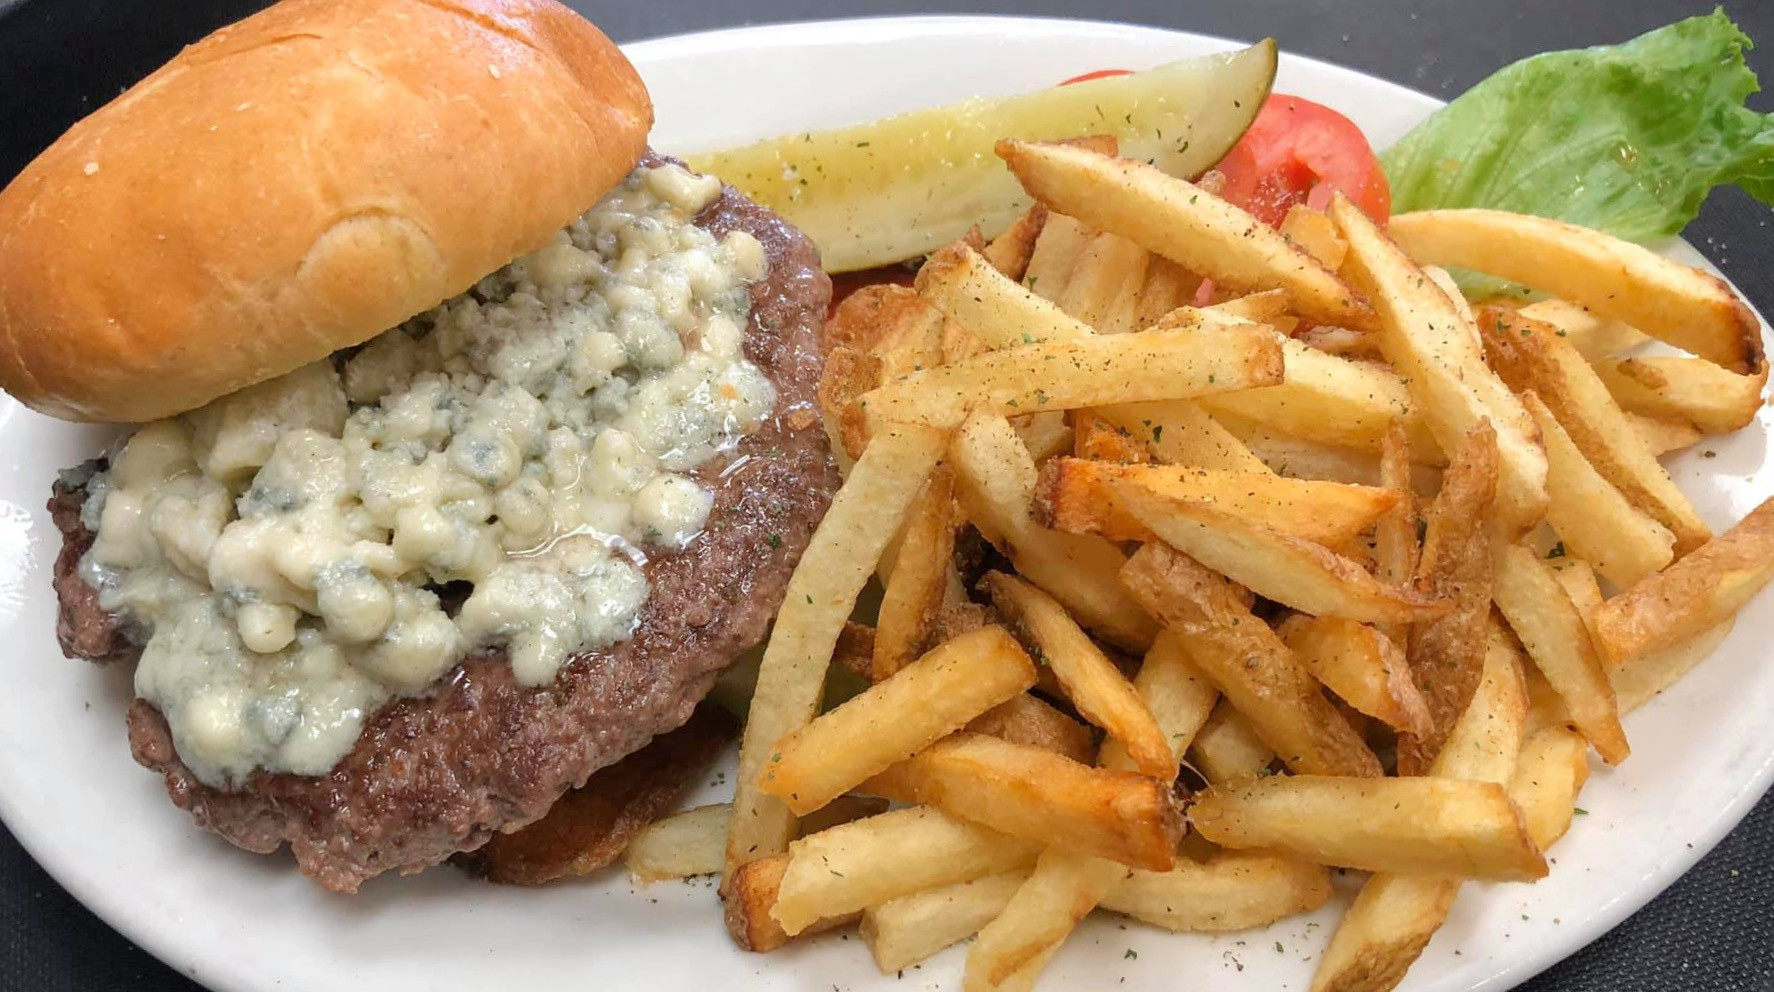 Blue%20Cheese%20Burger%20with%20Fries_ed